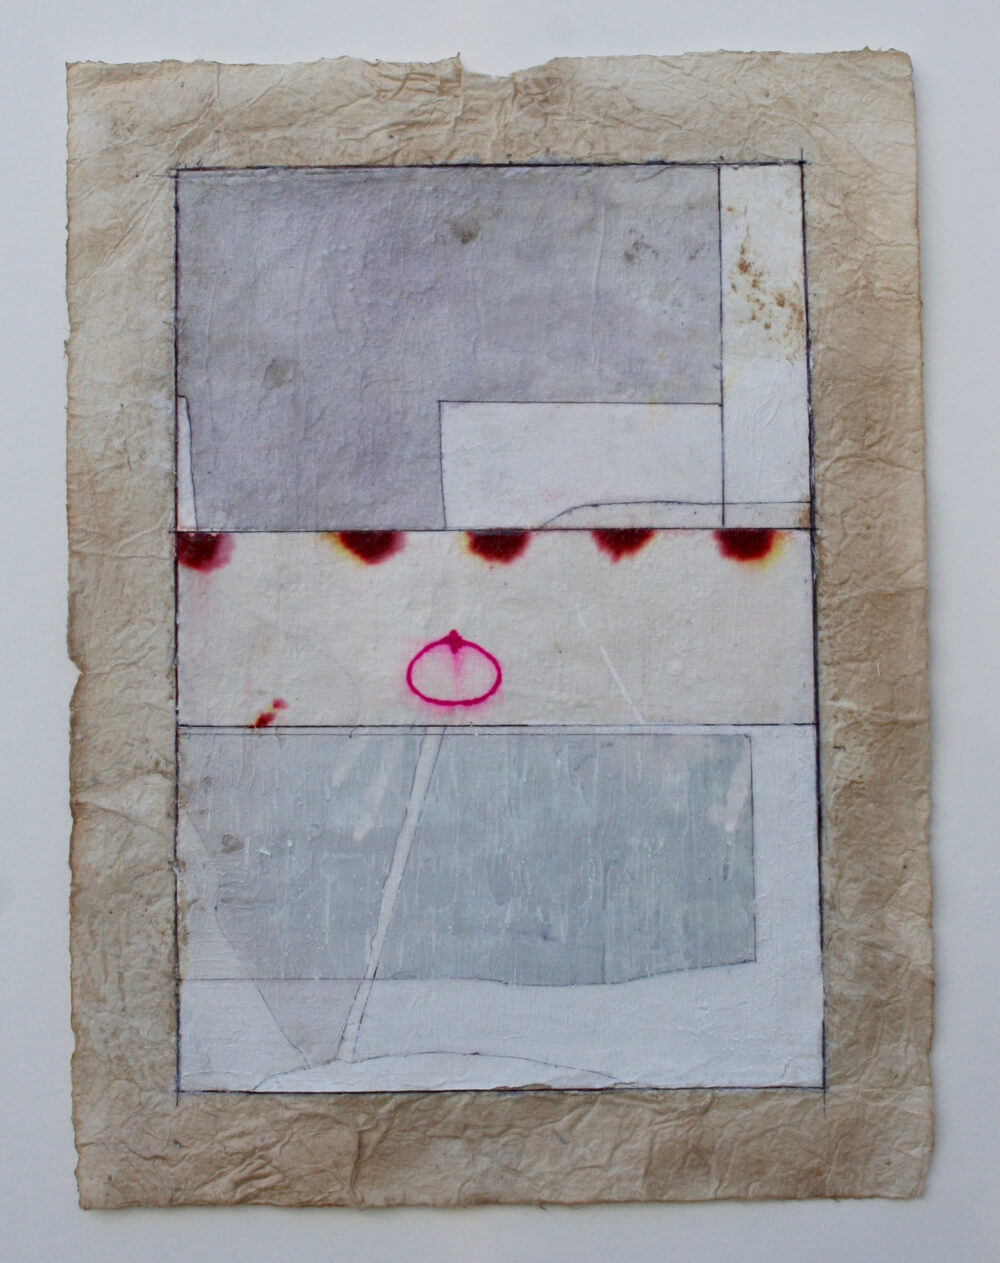 keys series   'deep pink unity'  mixed media on paper  12 x 9  sold  .  .